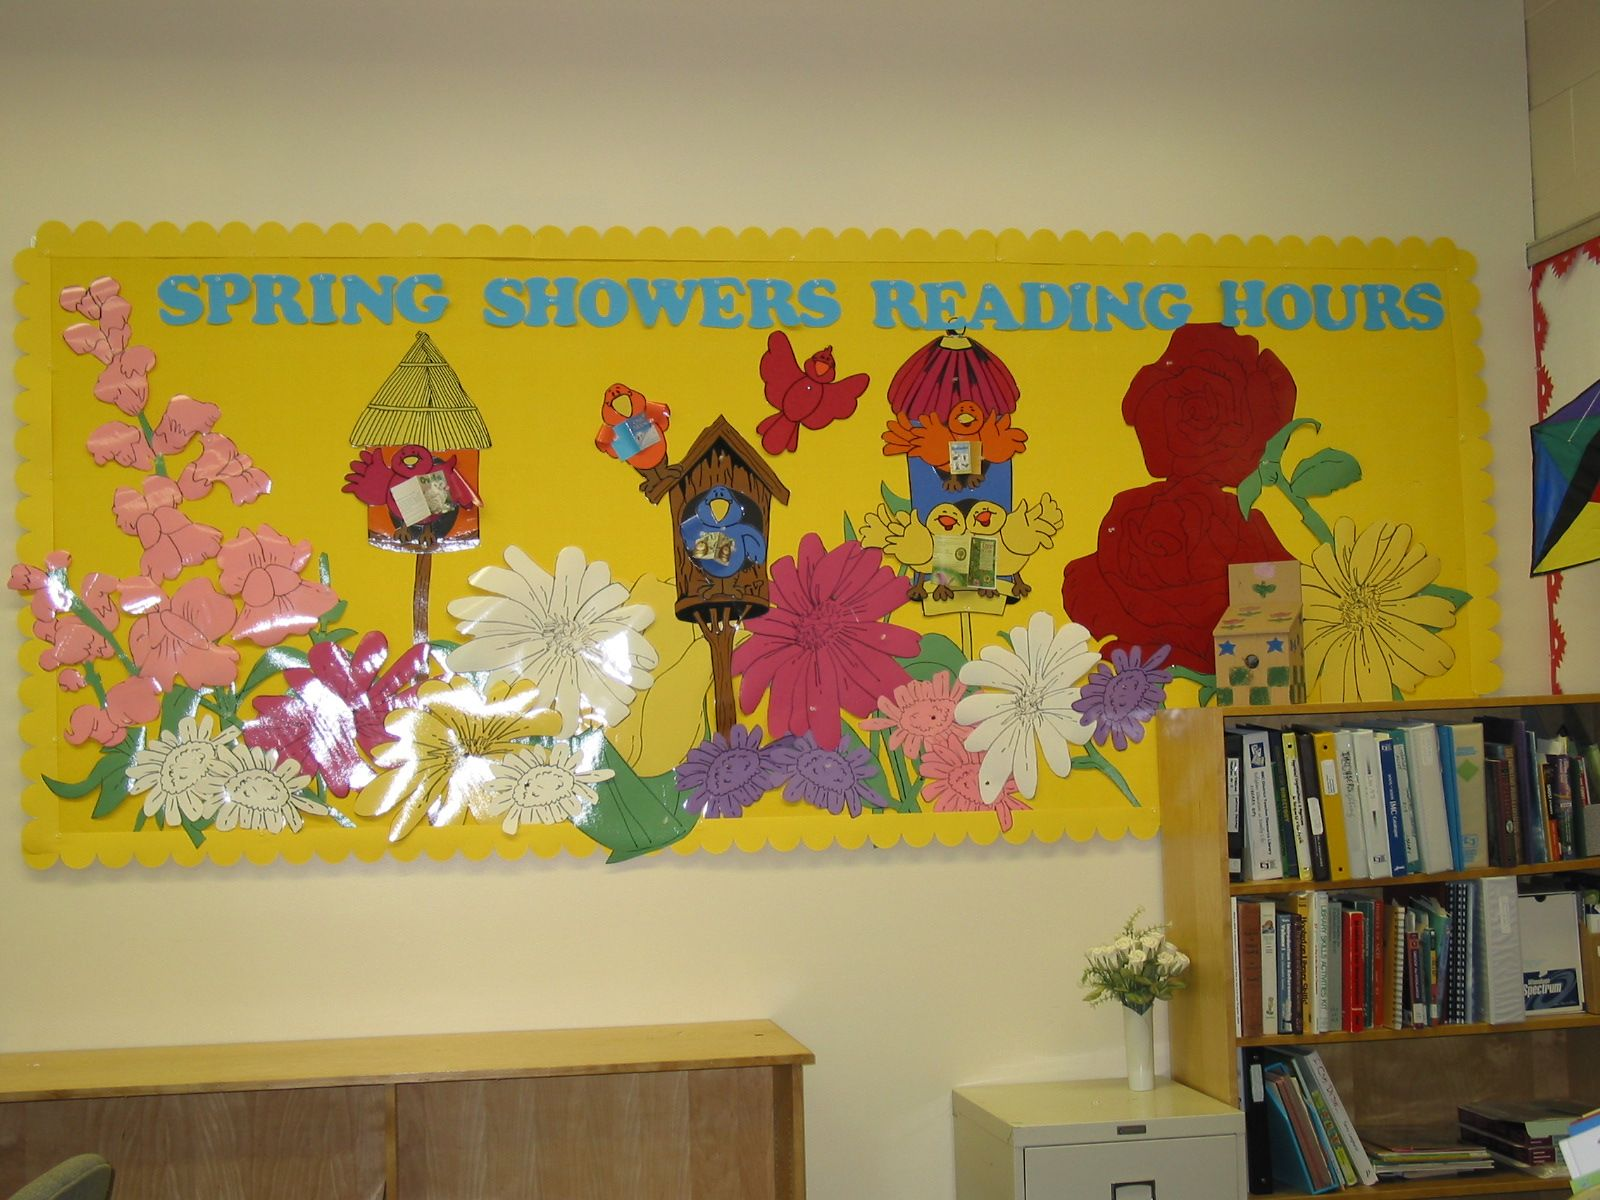 Barbra Hesson » Library Bulletin Boards spring showers reading hours ...